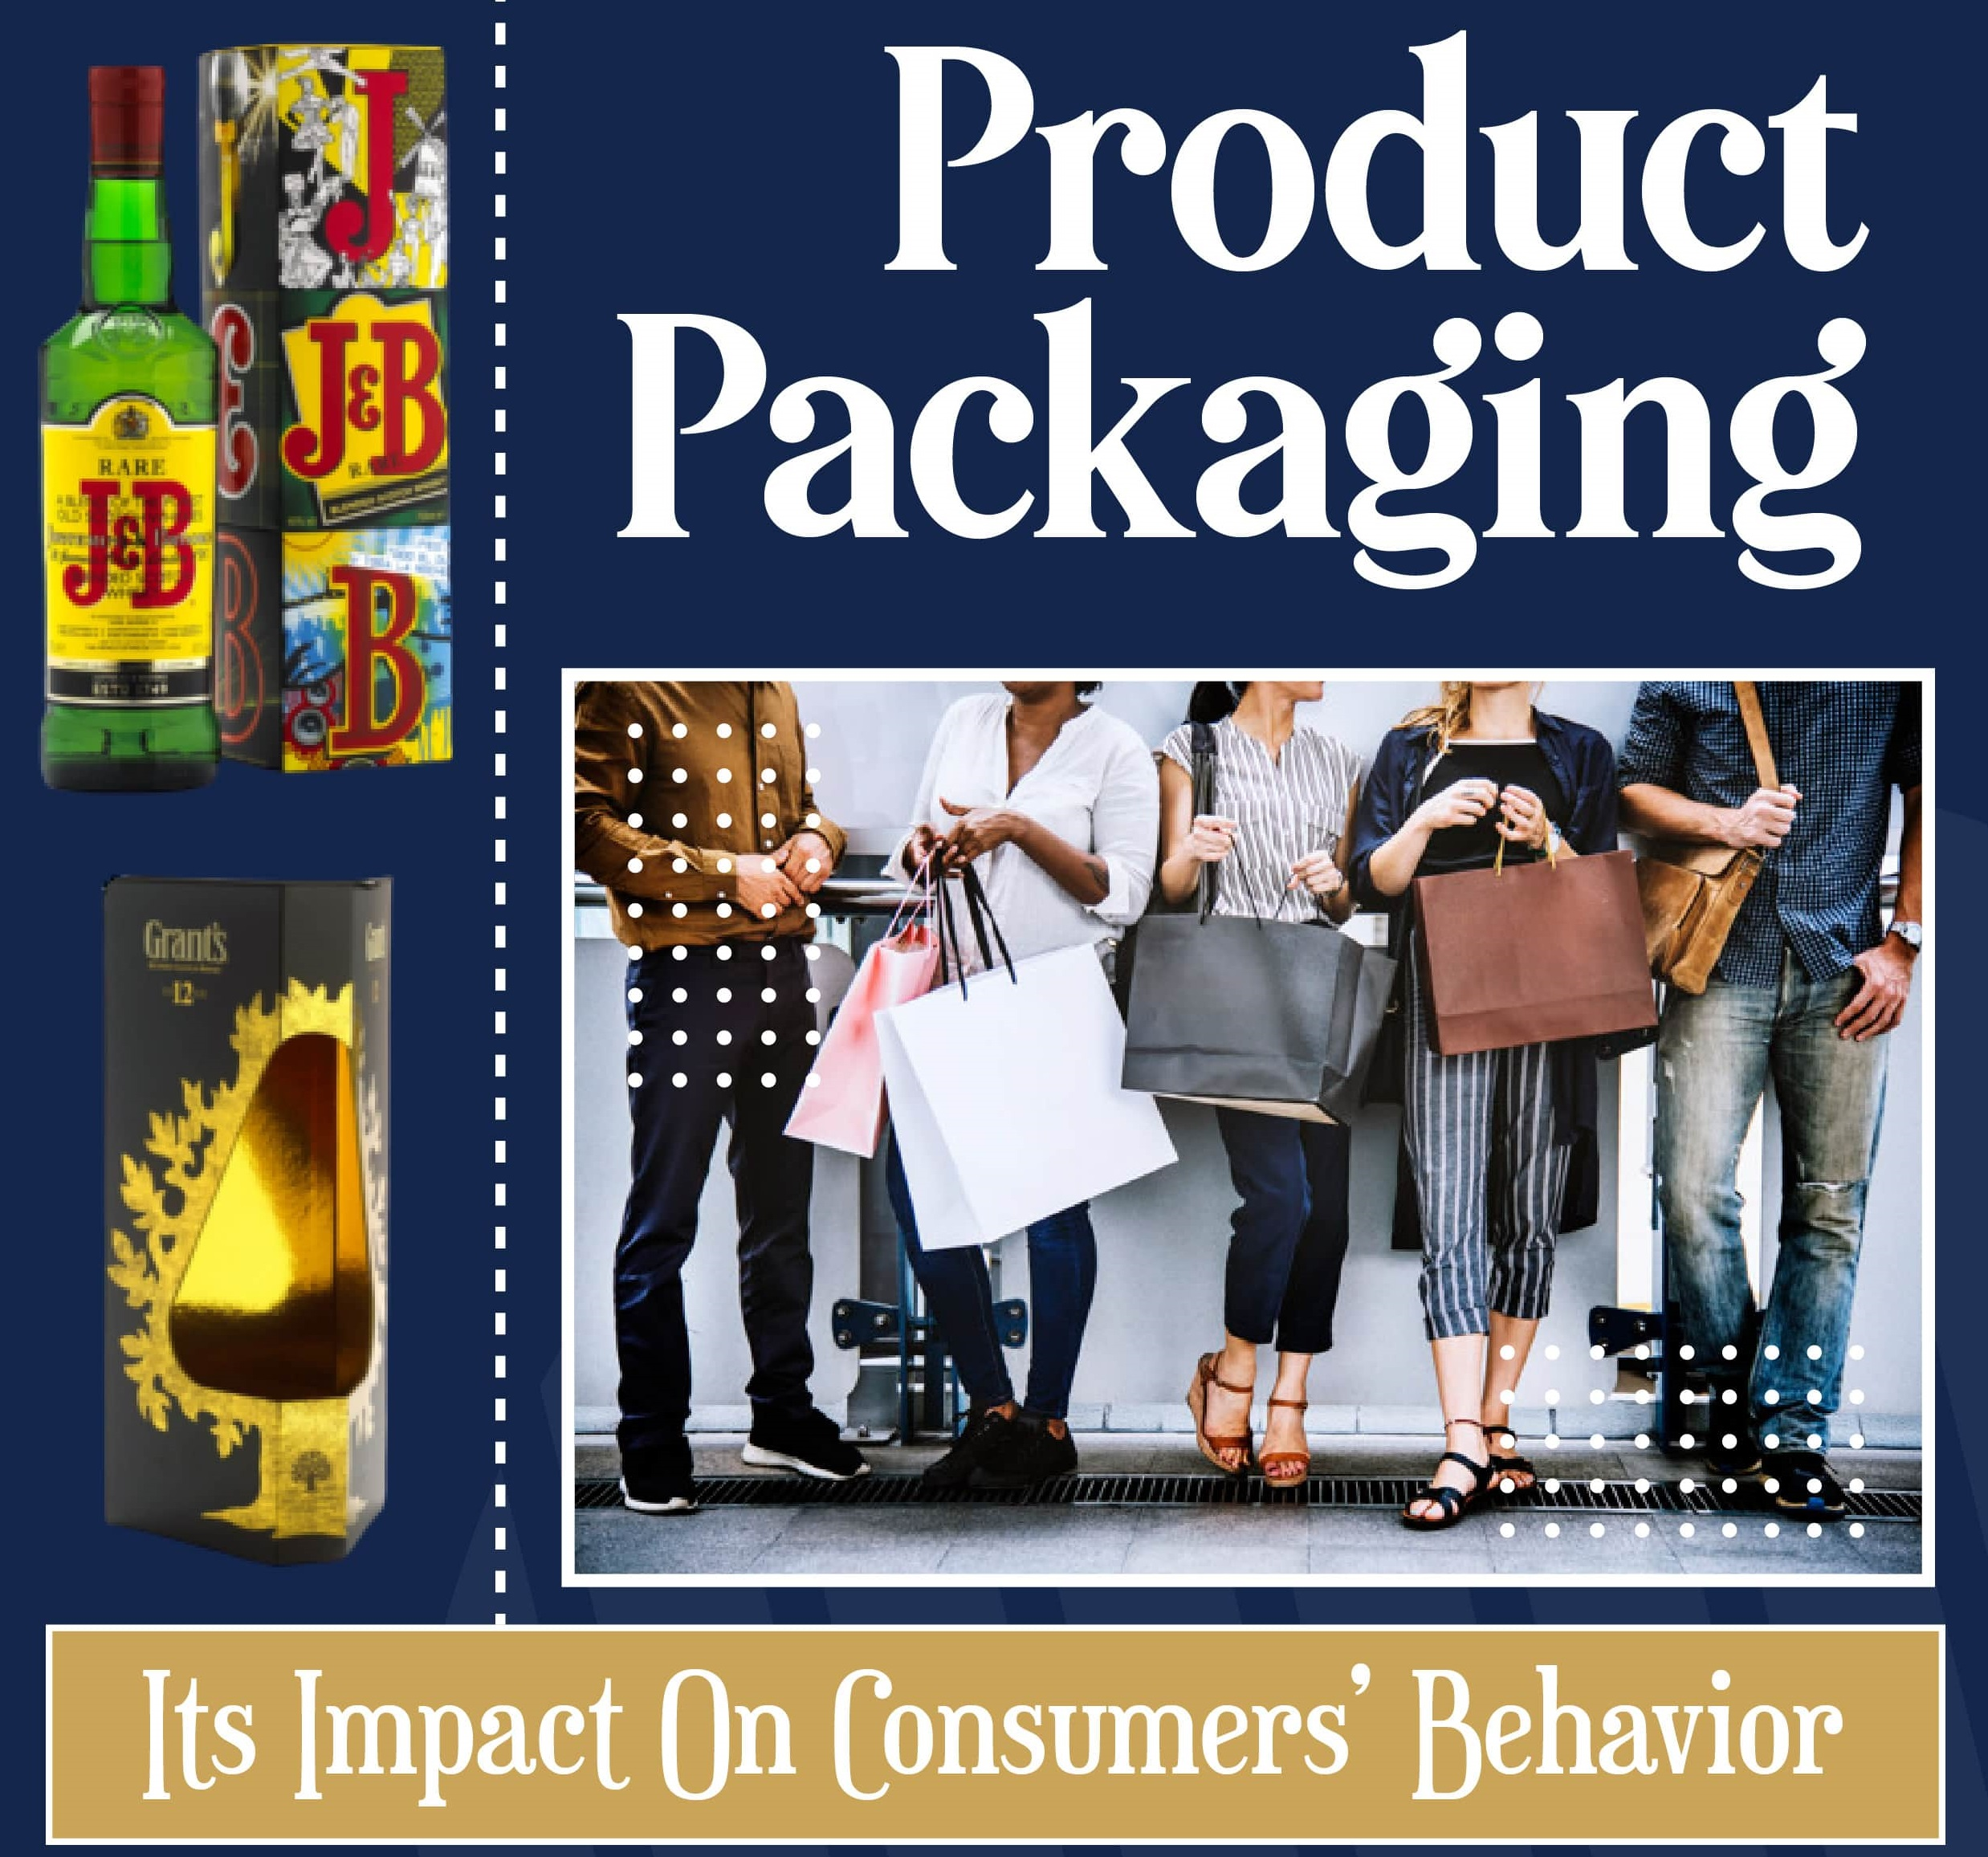 Product Packaging And Its Impact On Consumers' Behavior